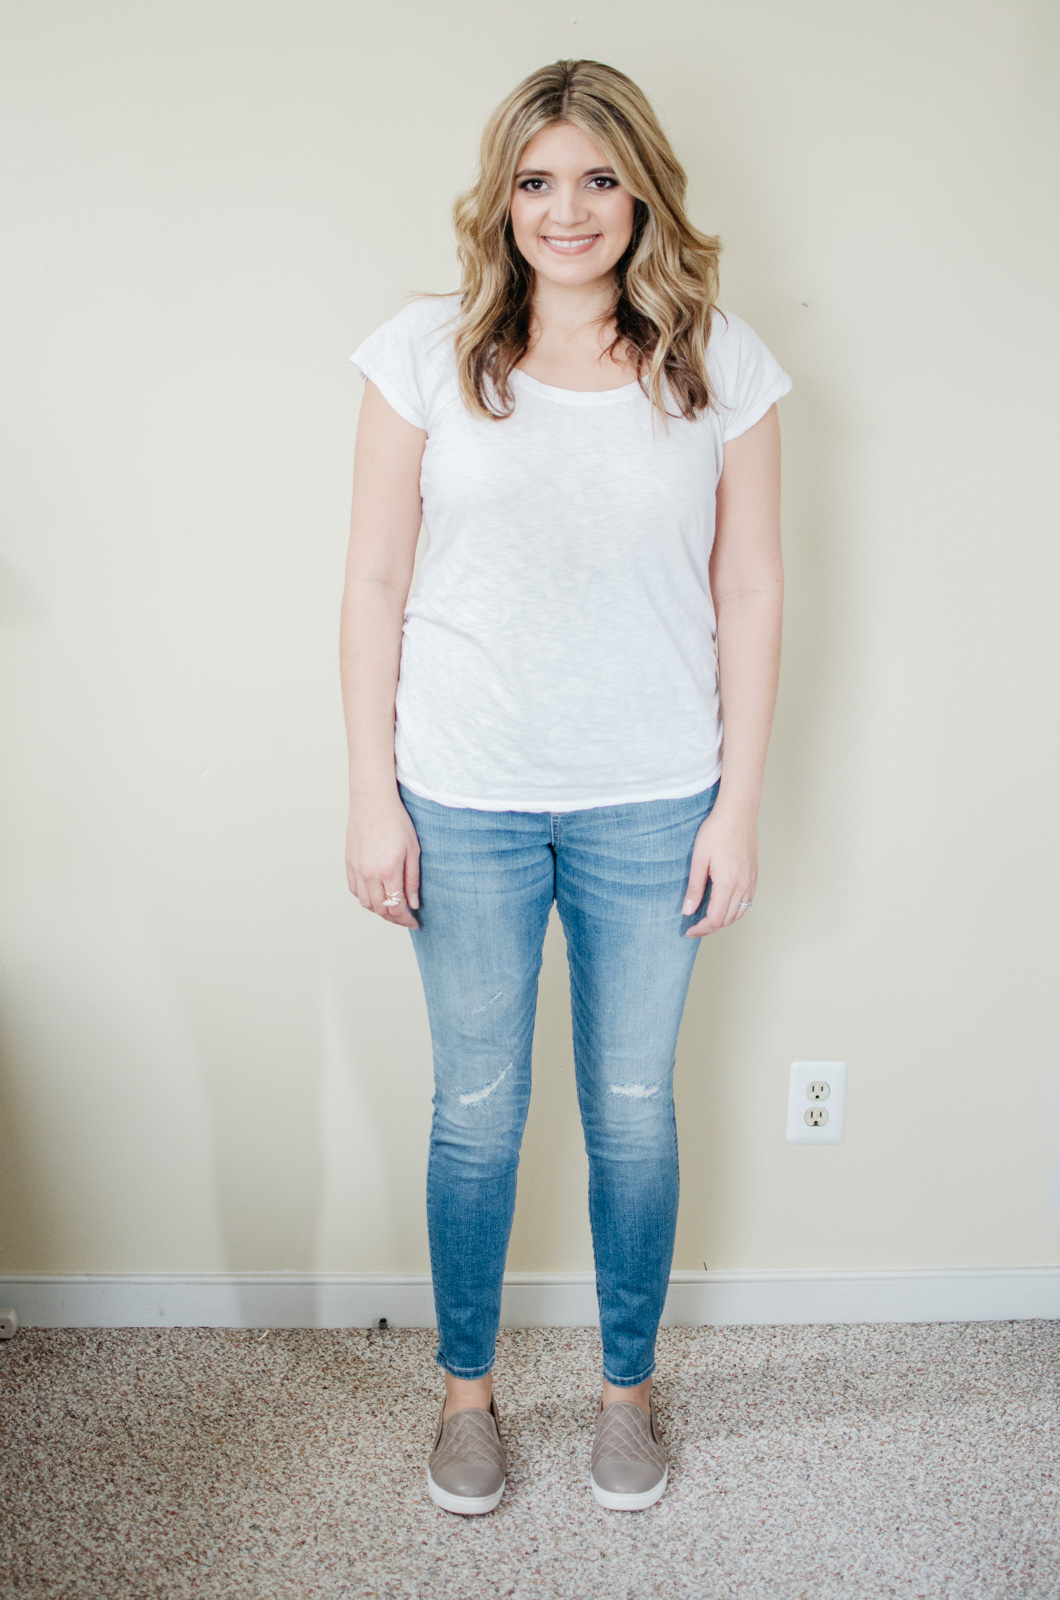 ultimate maternity jeans review - target maternity jeans review | See reviews of over 15 maternity jeans brands by clicking through to this post! | bylaurenm.com